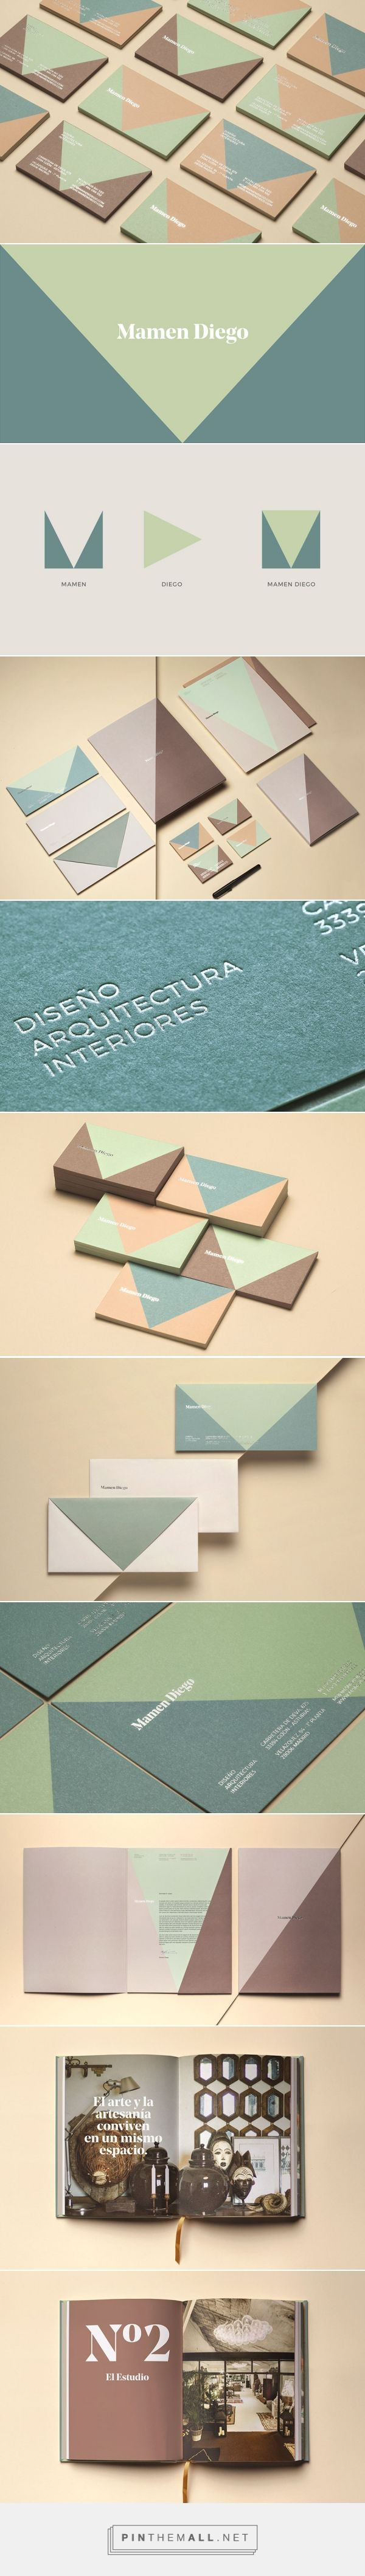 288 best corporate Identity images on Pinterest